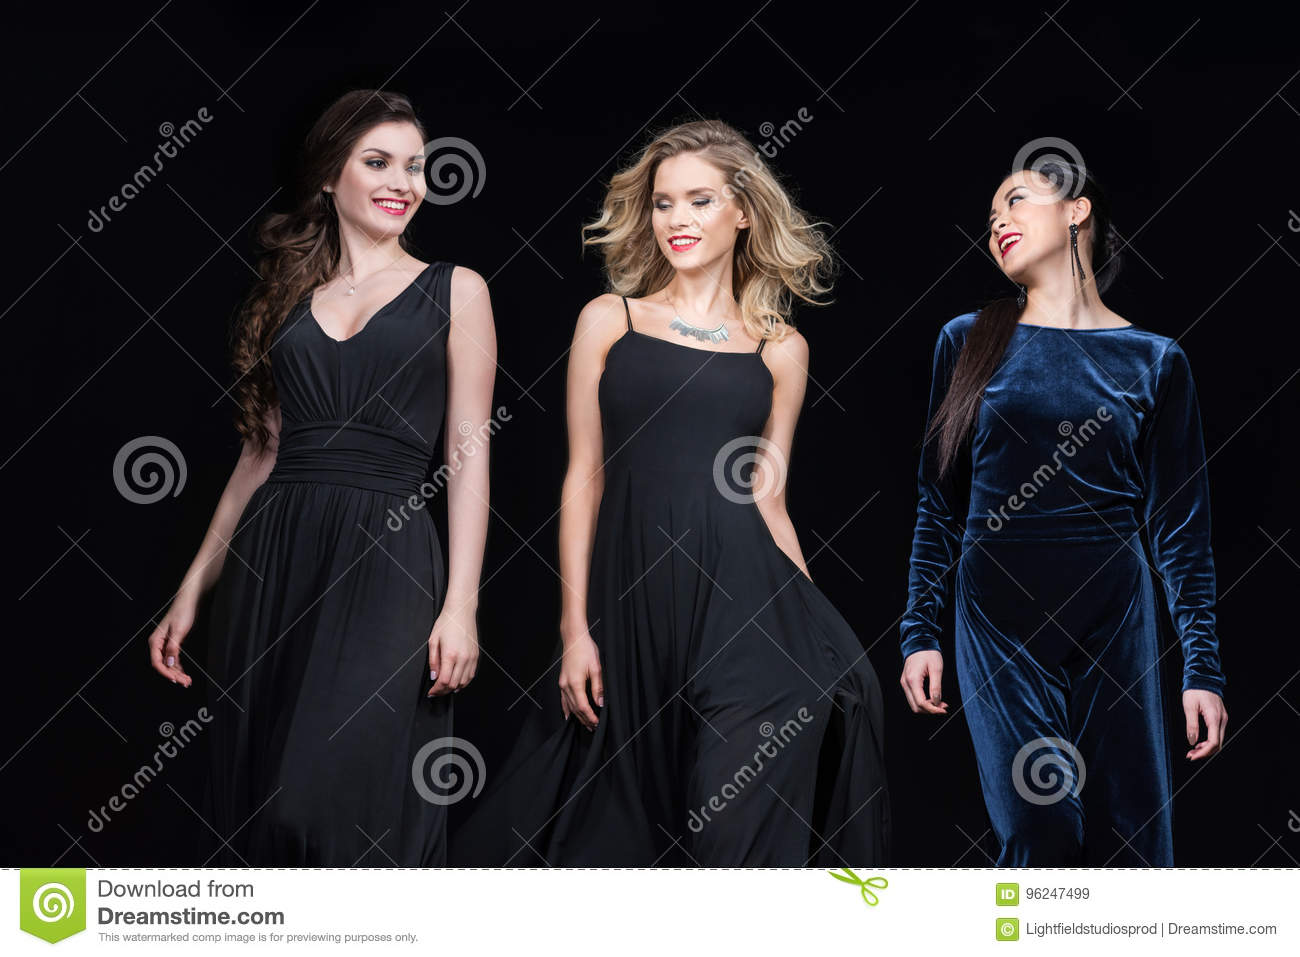 1f5cf37247e Cheerful women in stylish maxi dresses walking together isolated on black